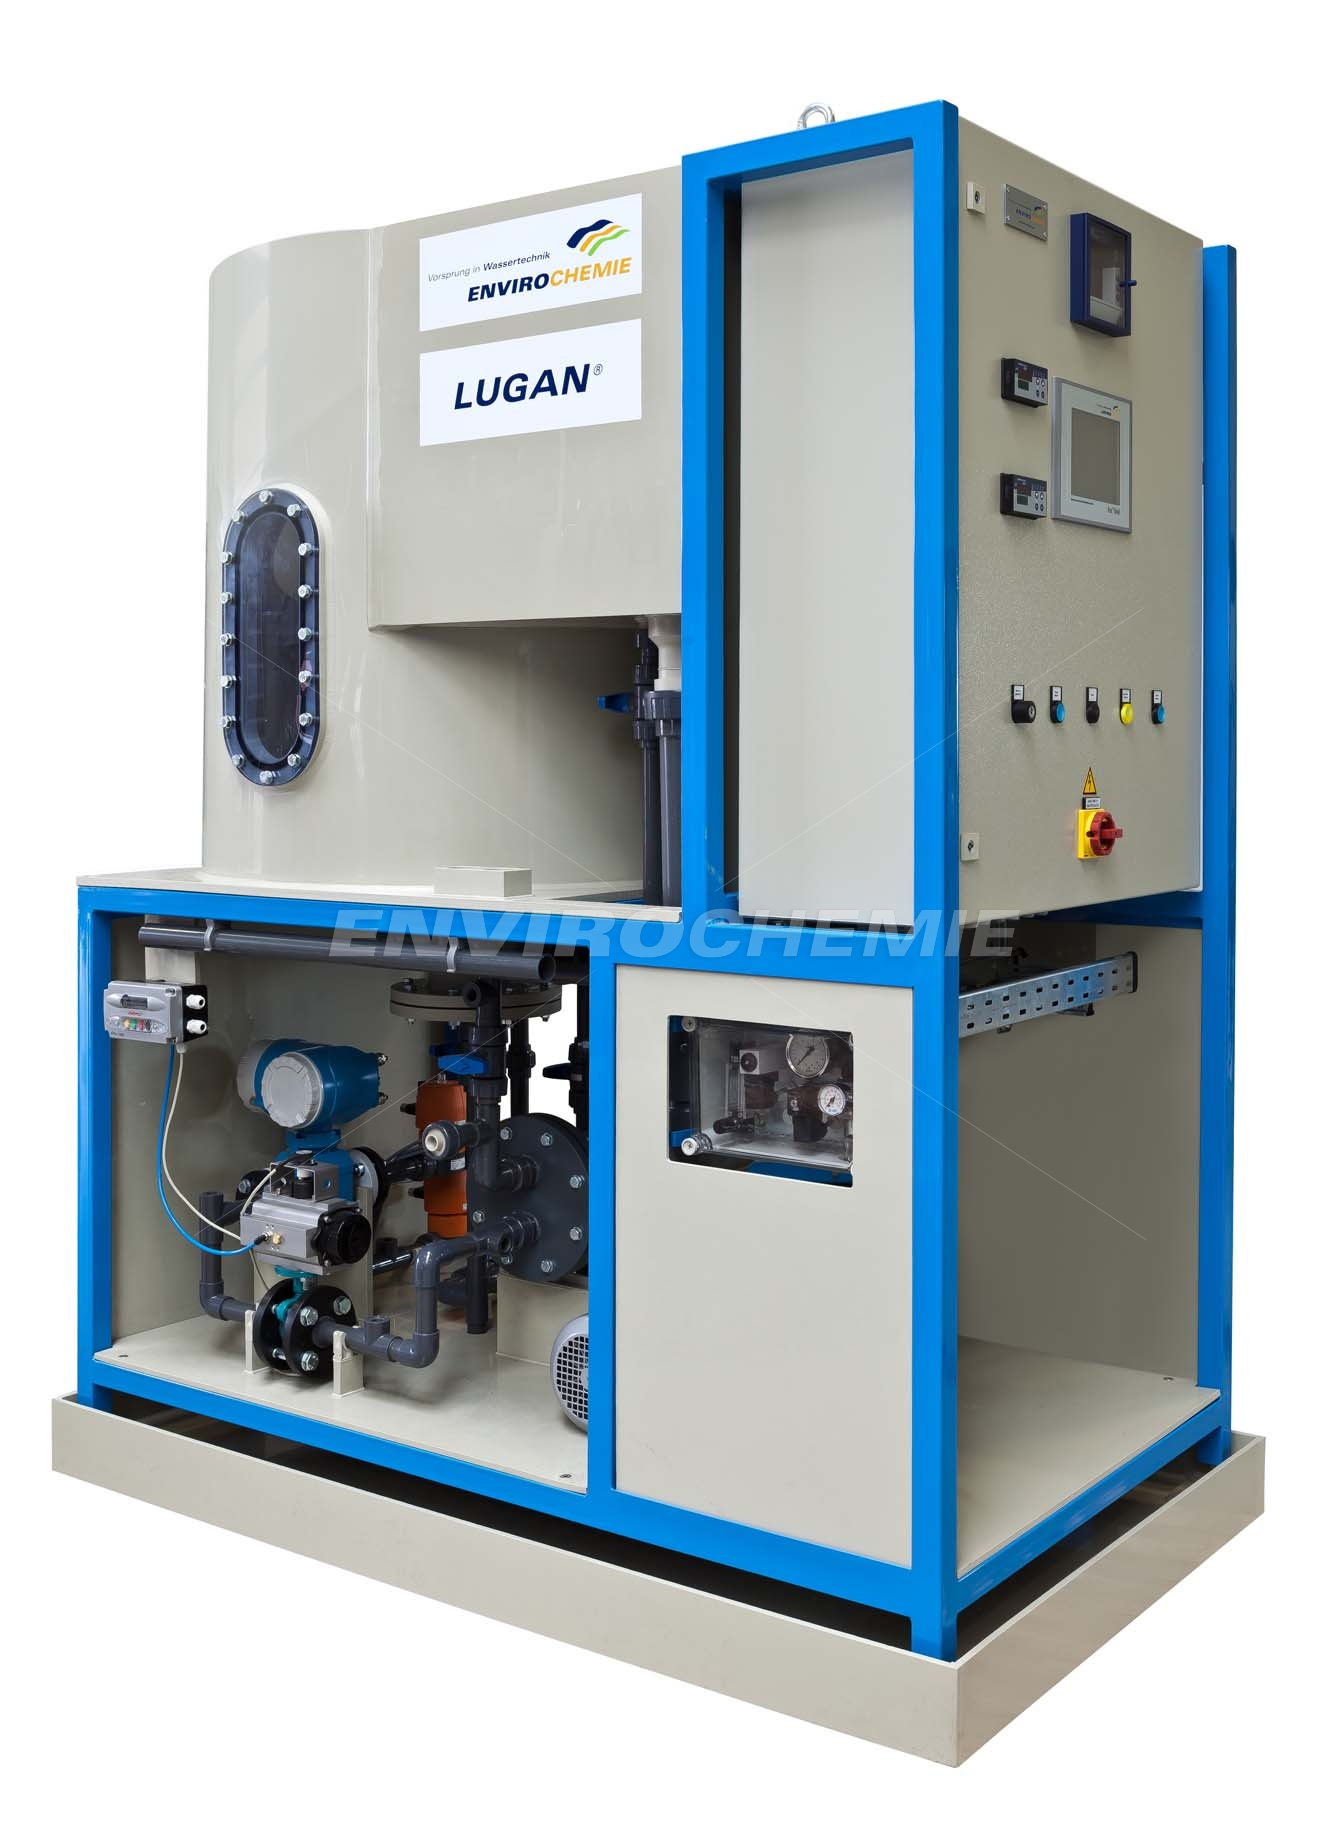 Lugan 3000 compact flotation plant which has been